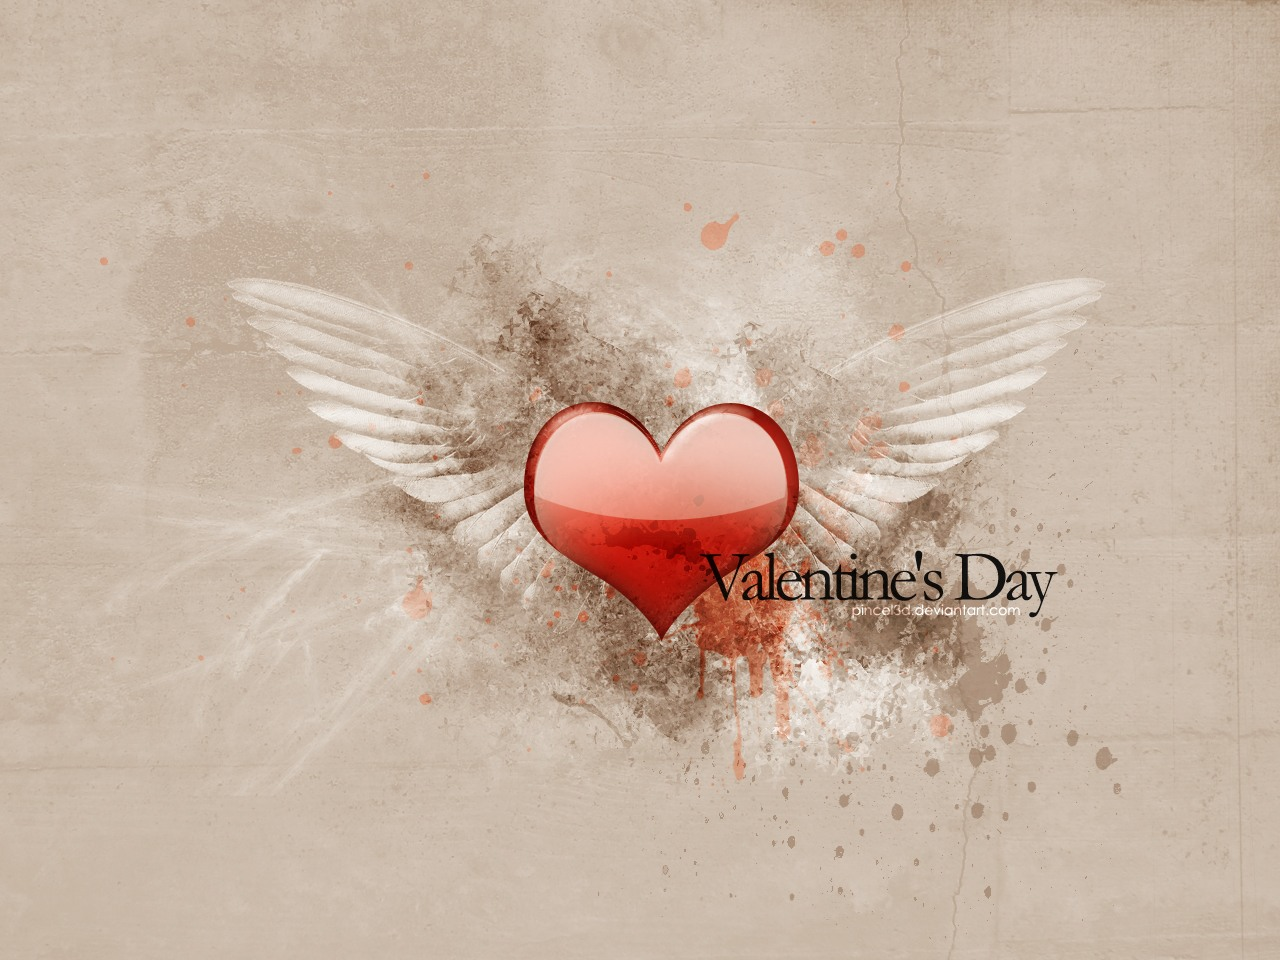 Valentines Day Wallpapers 1280x960